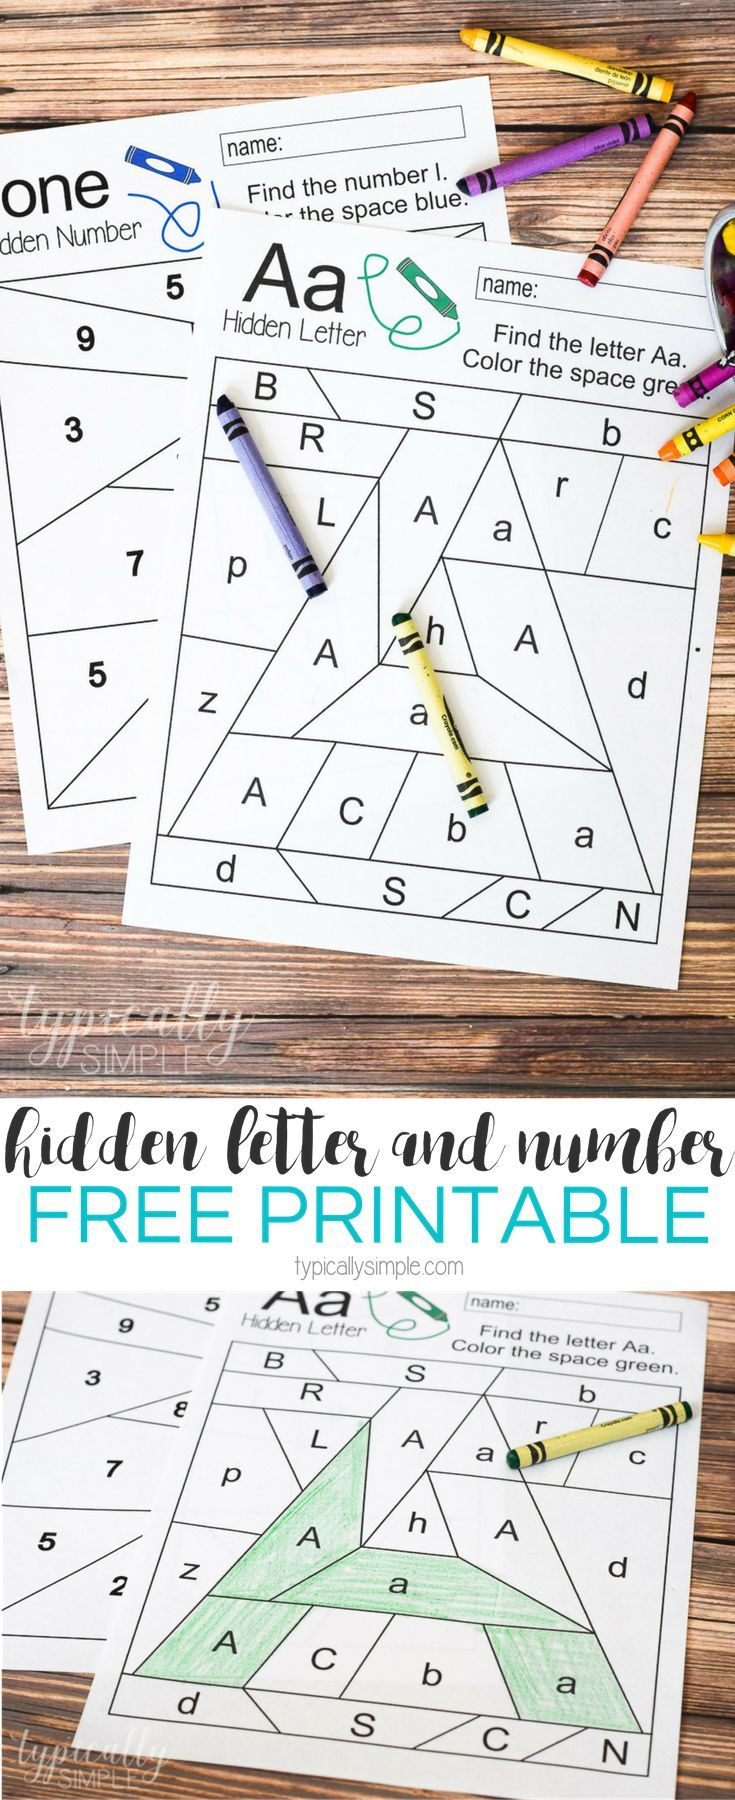 Hidden Letter & Number Free Printable Preschool